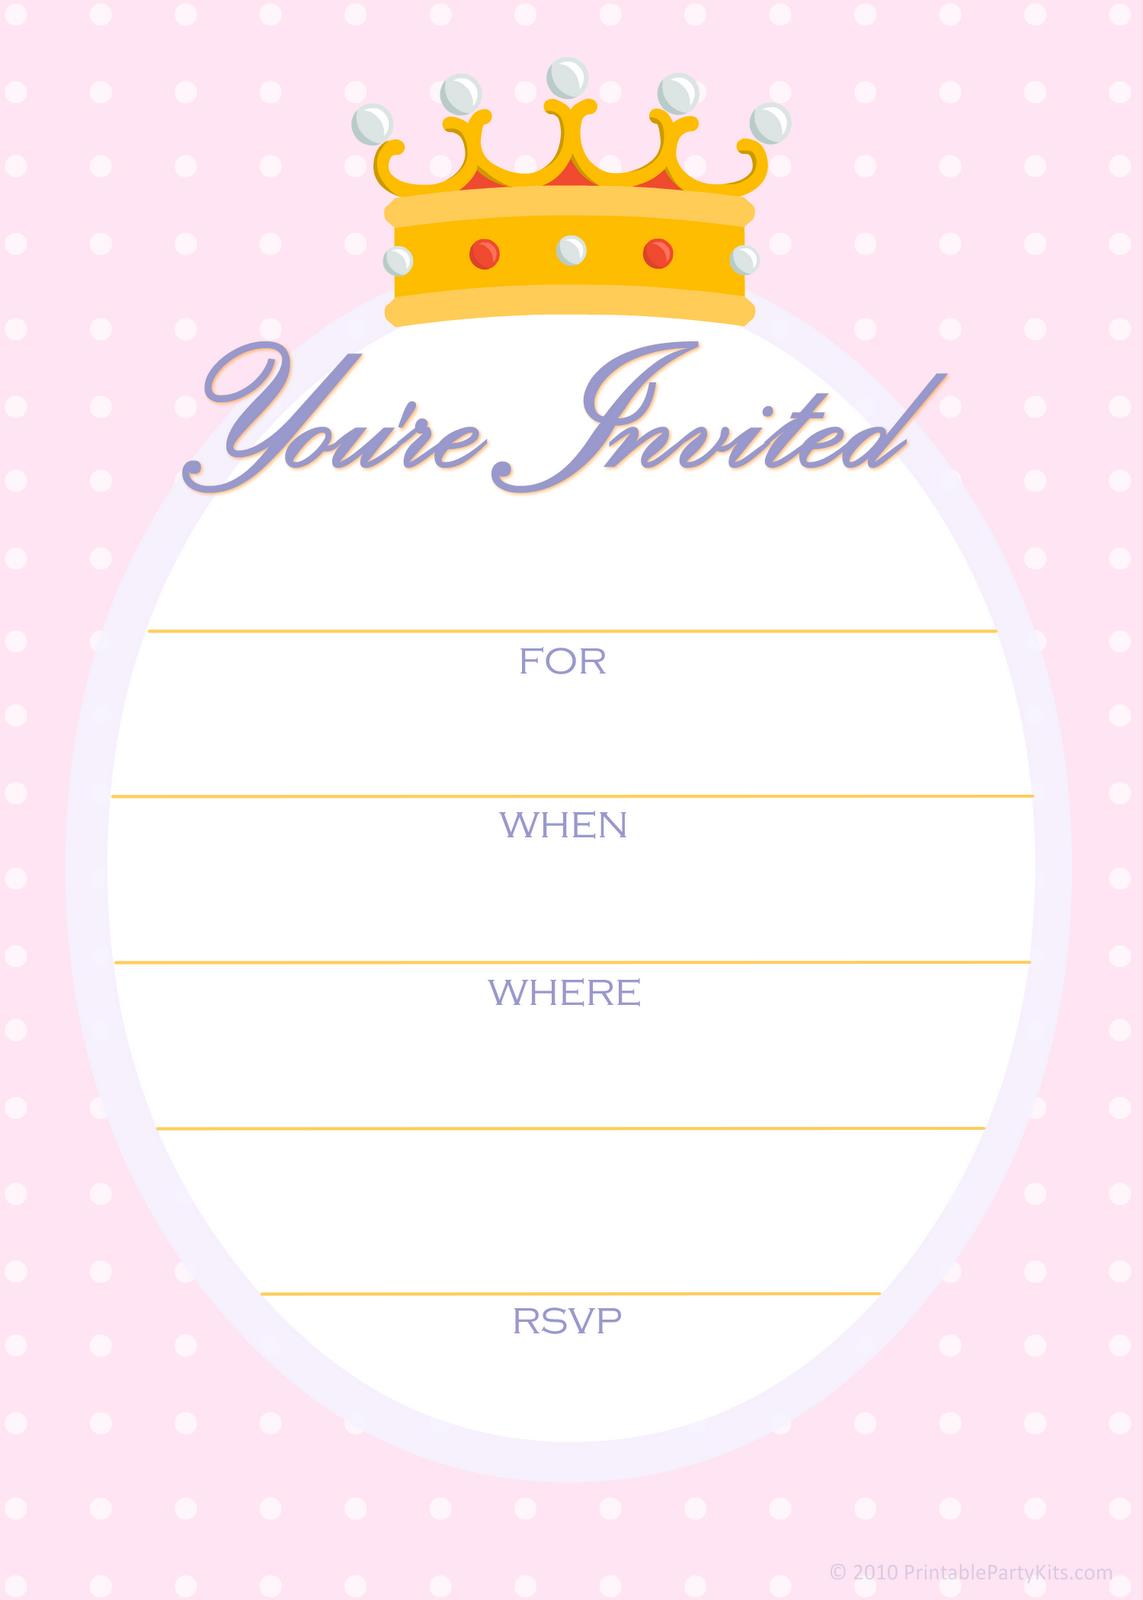 free invitation cards for birthday party ; 6f6a0918a826415370f2155fb74b060d